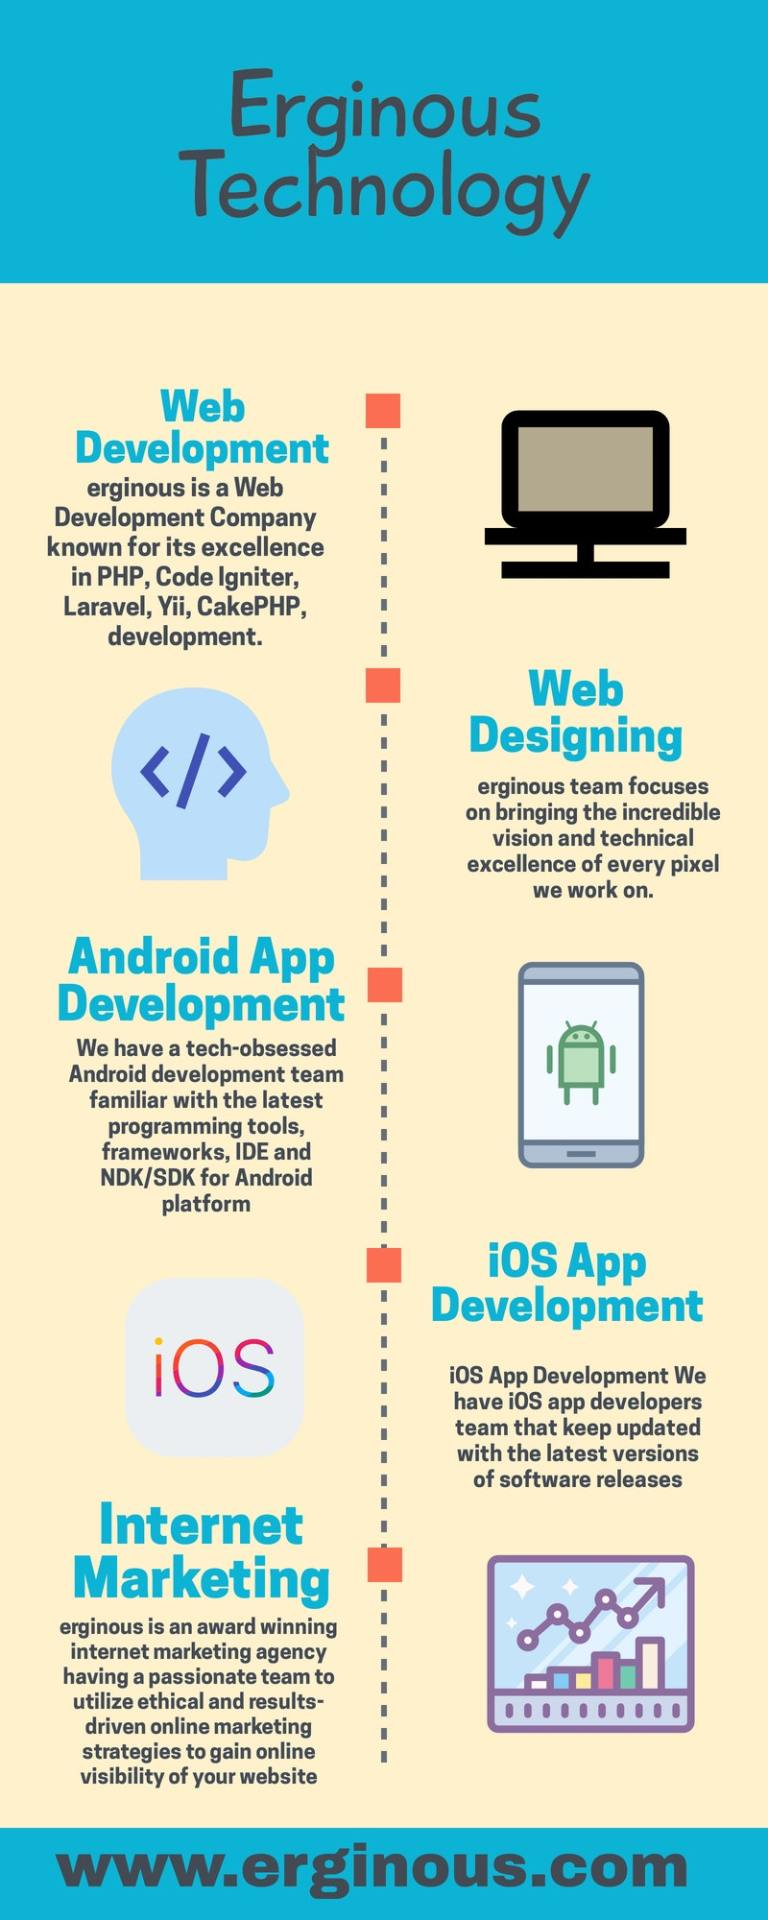 Mobile Phone Application Development Companies